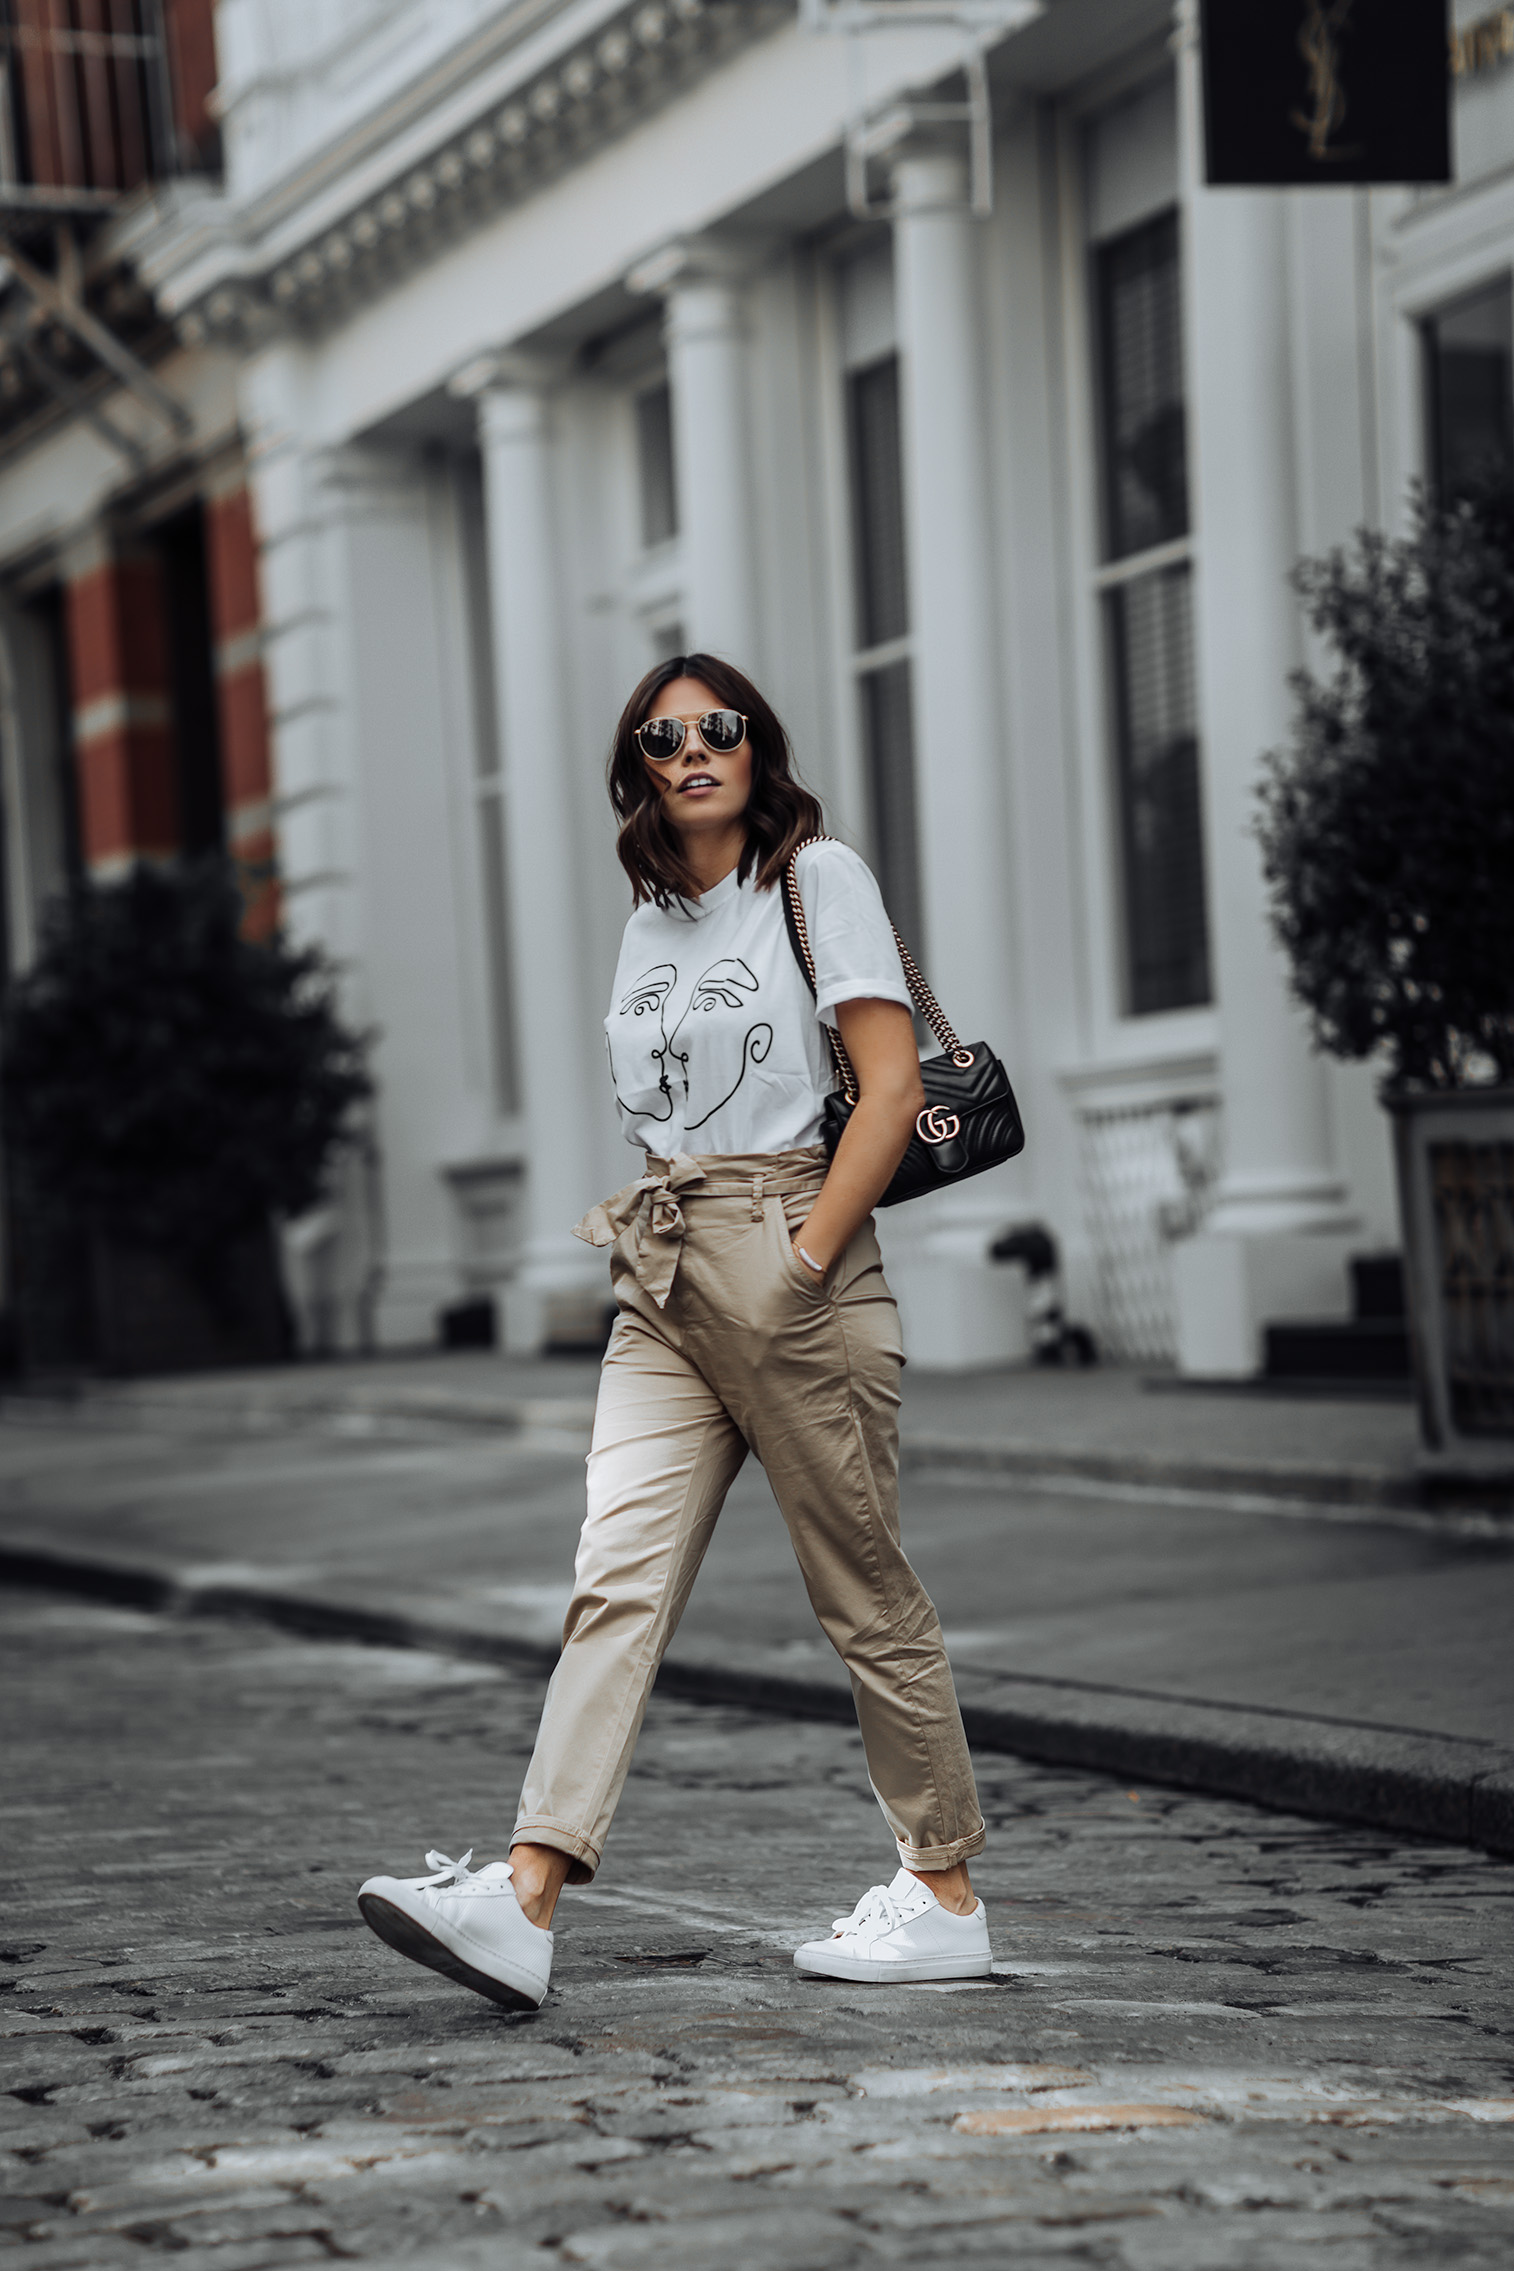 Stradivarious Plain Tie Waist Pants | ASOS Graphic Tee | Greats Brand Sneakers | Gucci Bag #streetstyle #liketkit #ASOS #paperbagpants